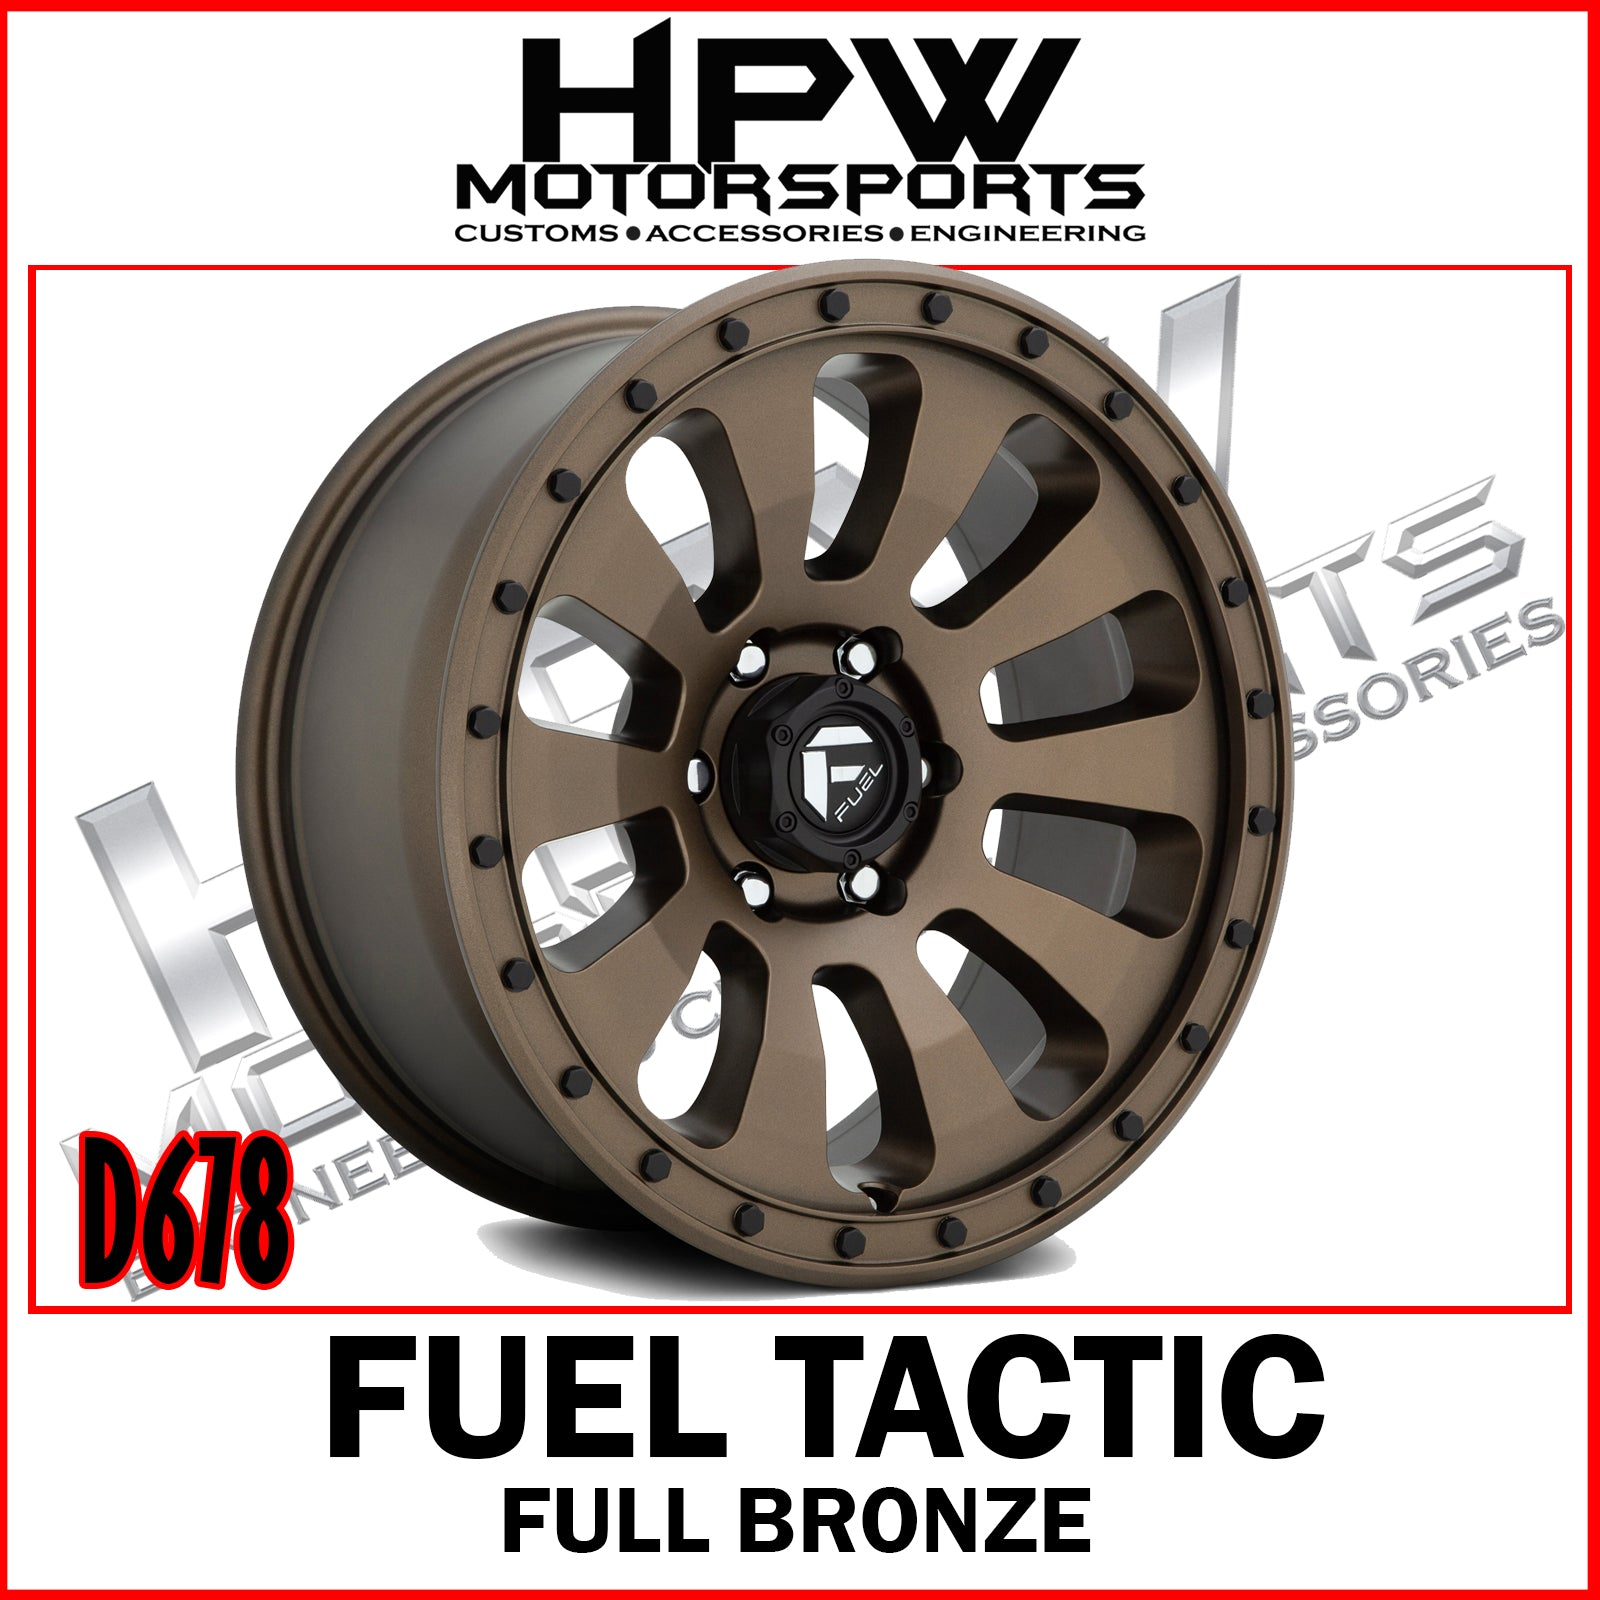 D678 FUEL TACTIC - FULL BRONZE - Set of 4